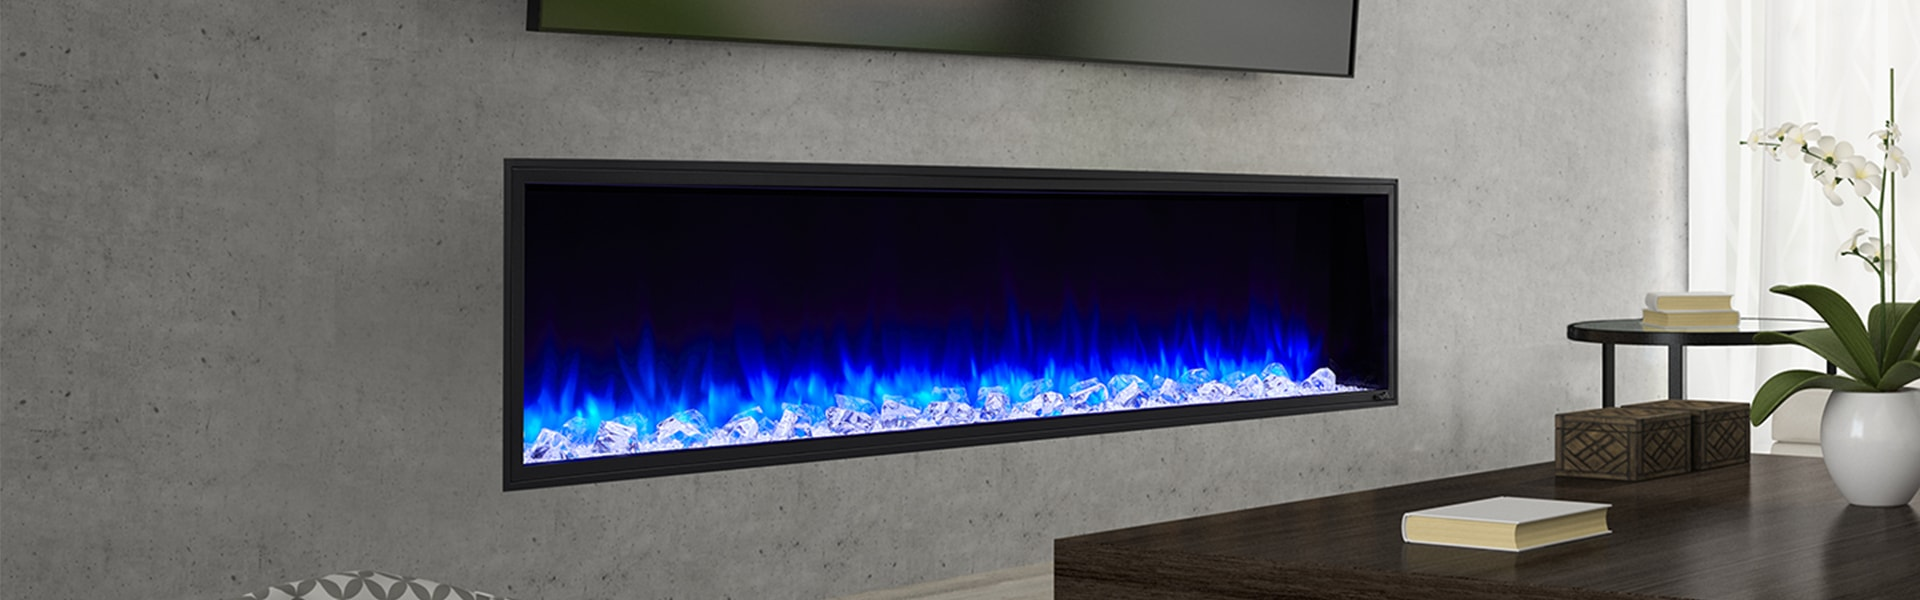 simplifire scion electric fireplace rh monessenhearth com blue flame fireplace key blue flame fireplace how to light